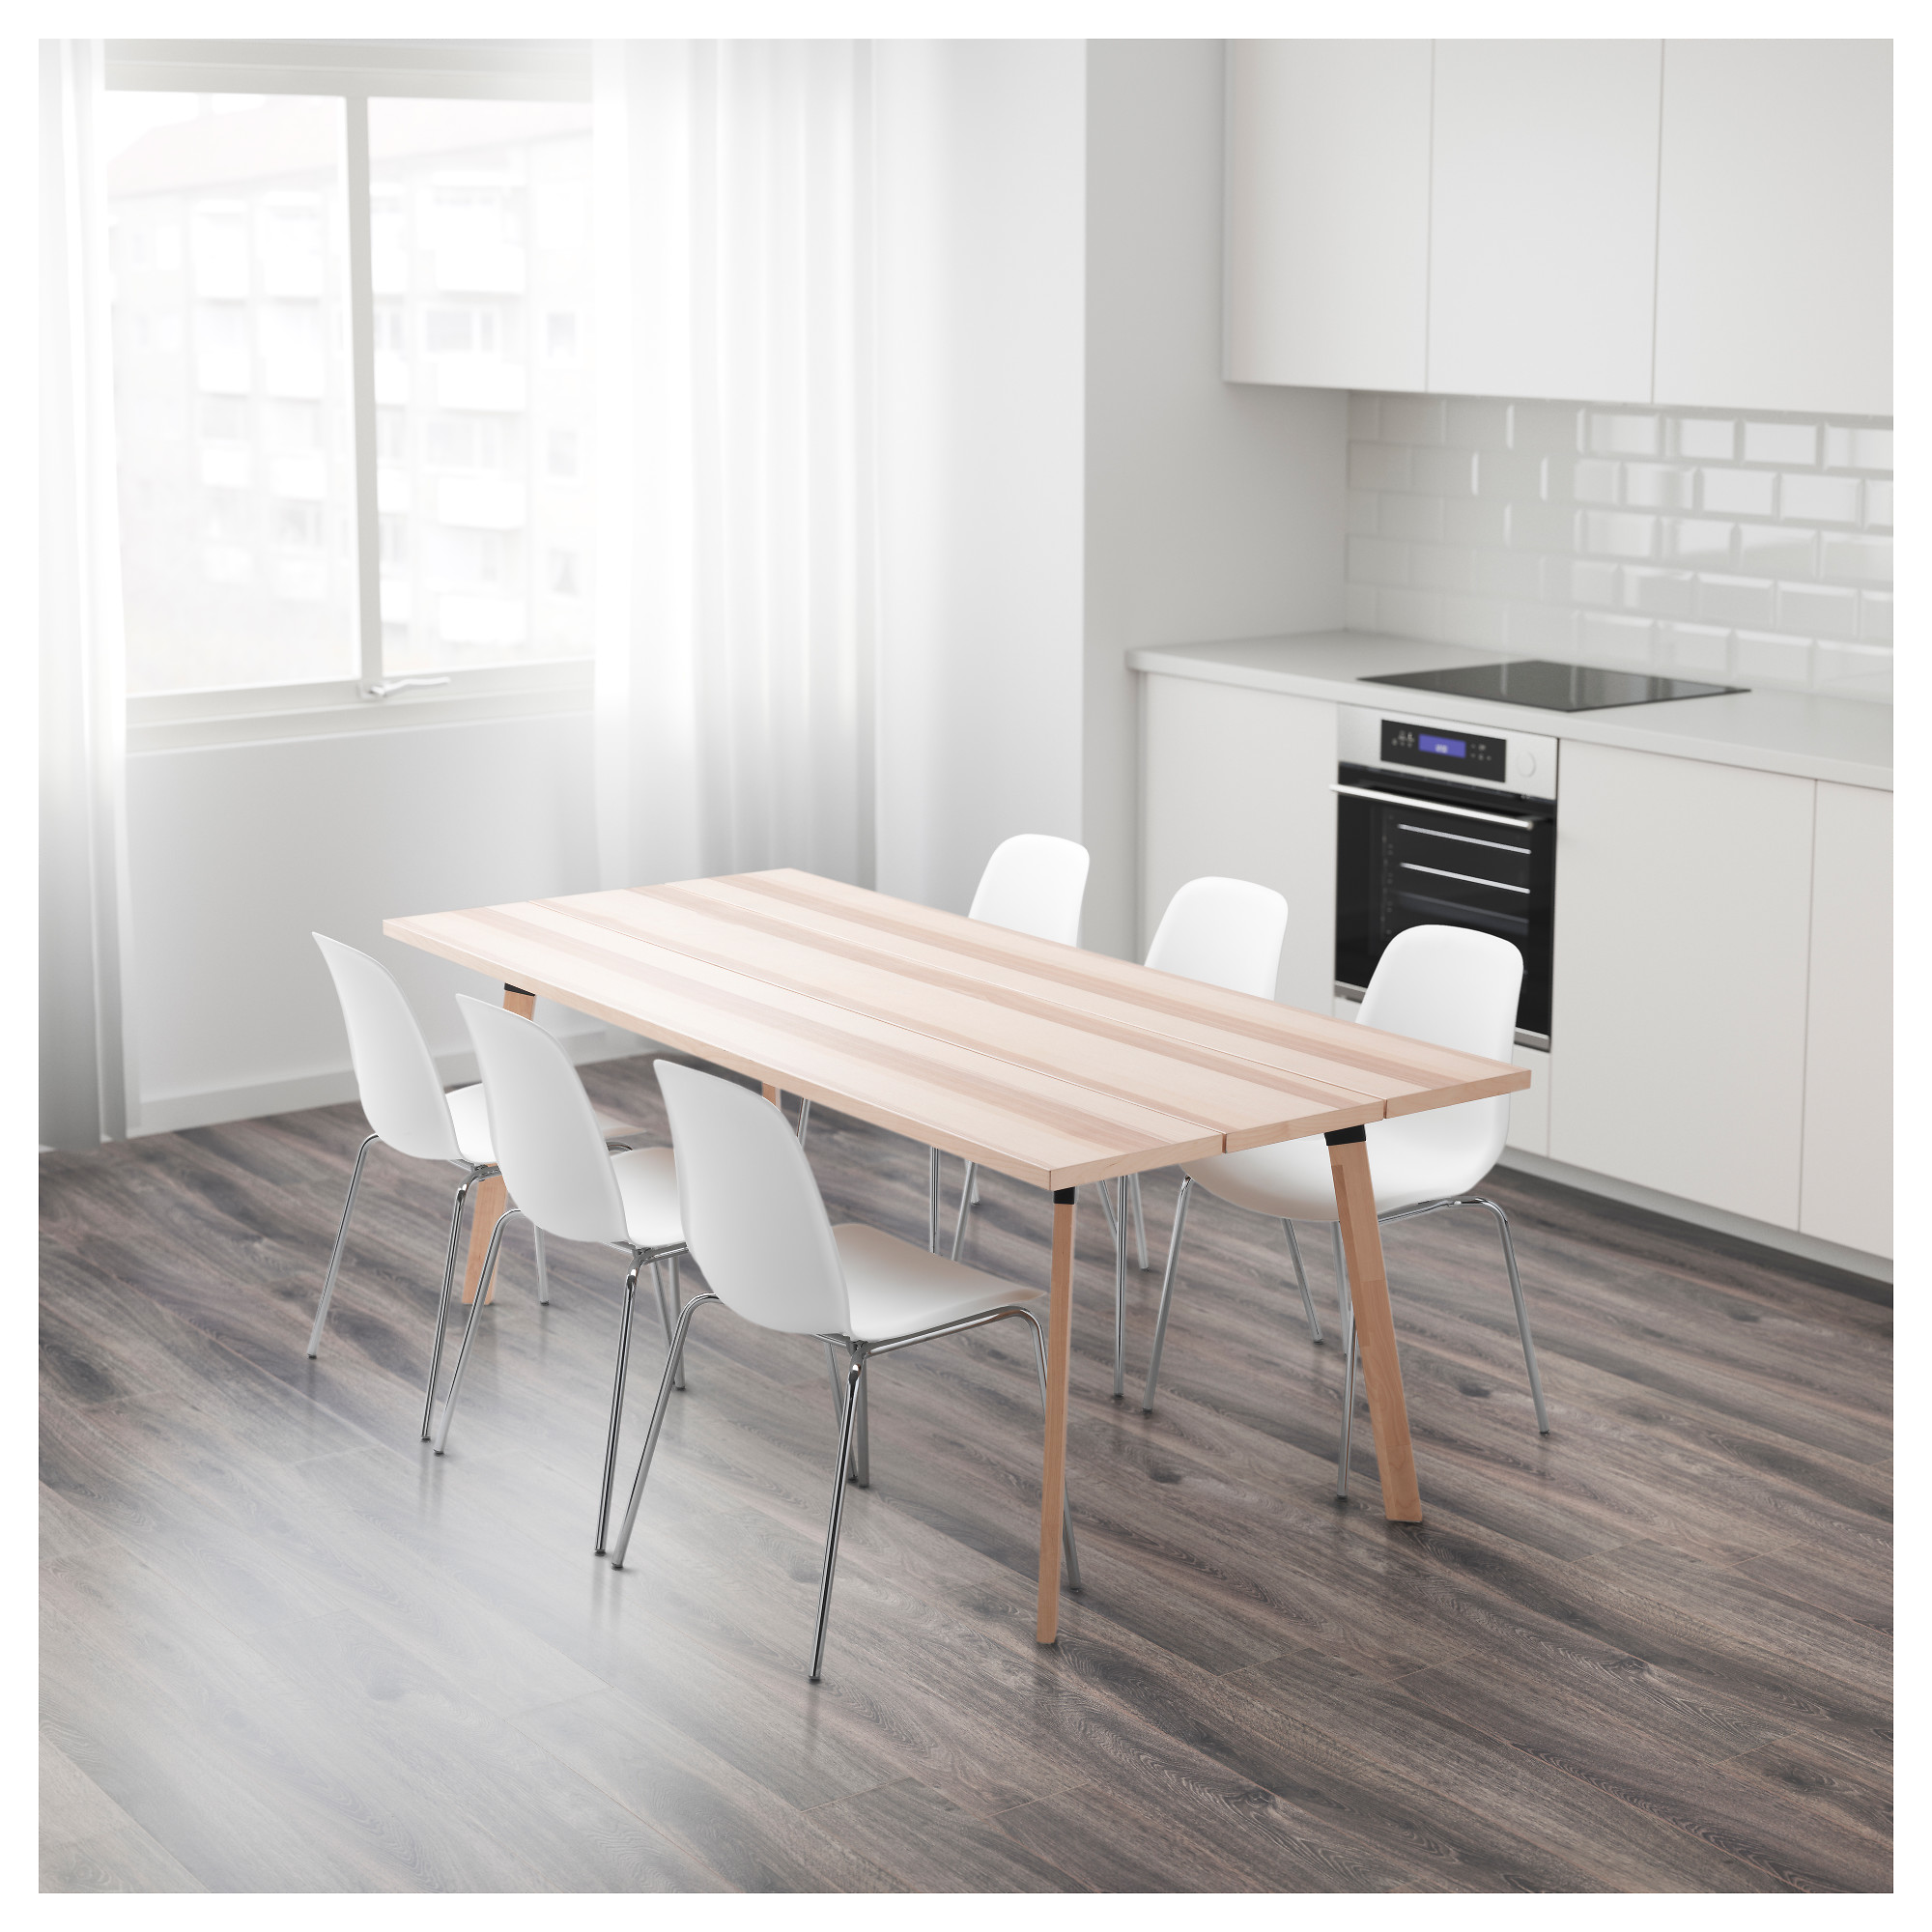 YPPERLIG Table - IKEA